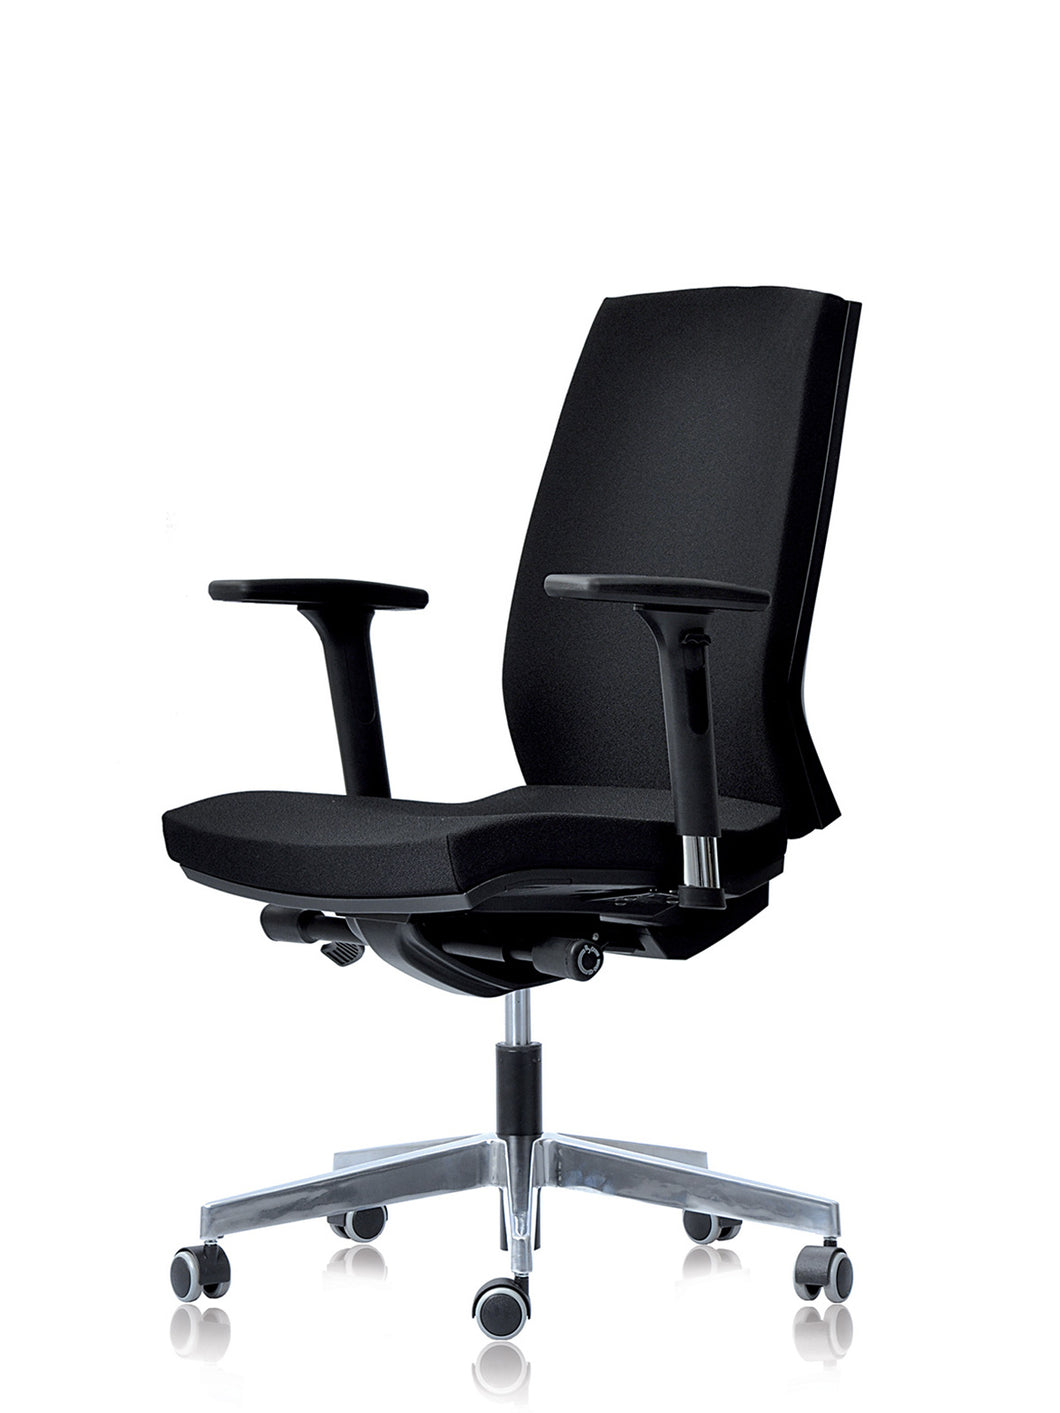 DE 80SY -Manager's Chair.